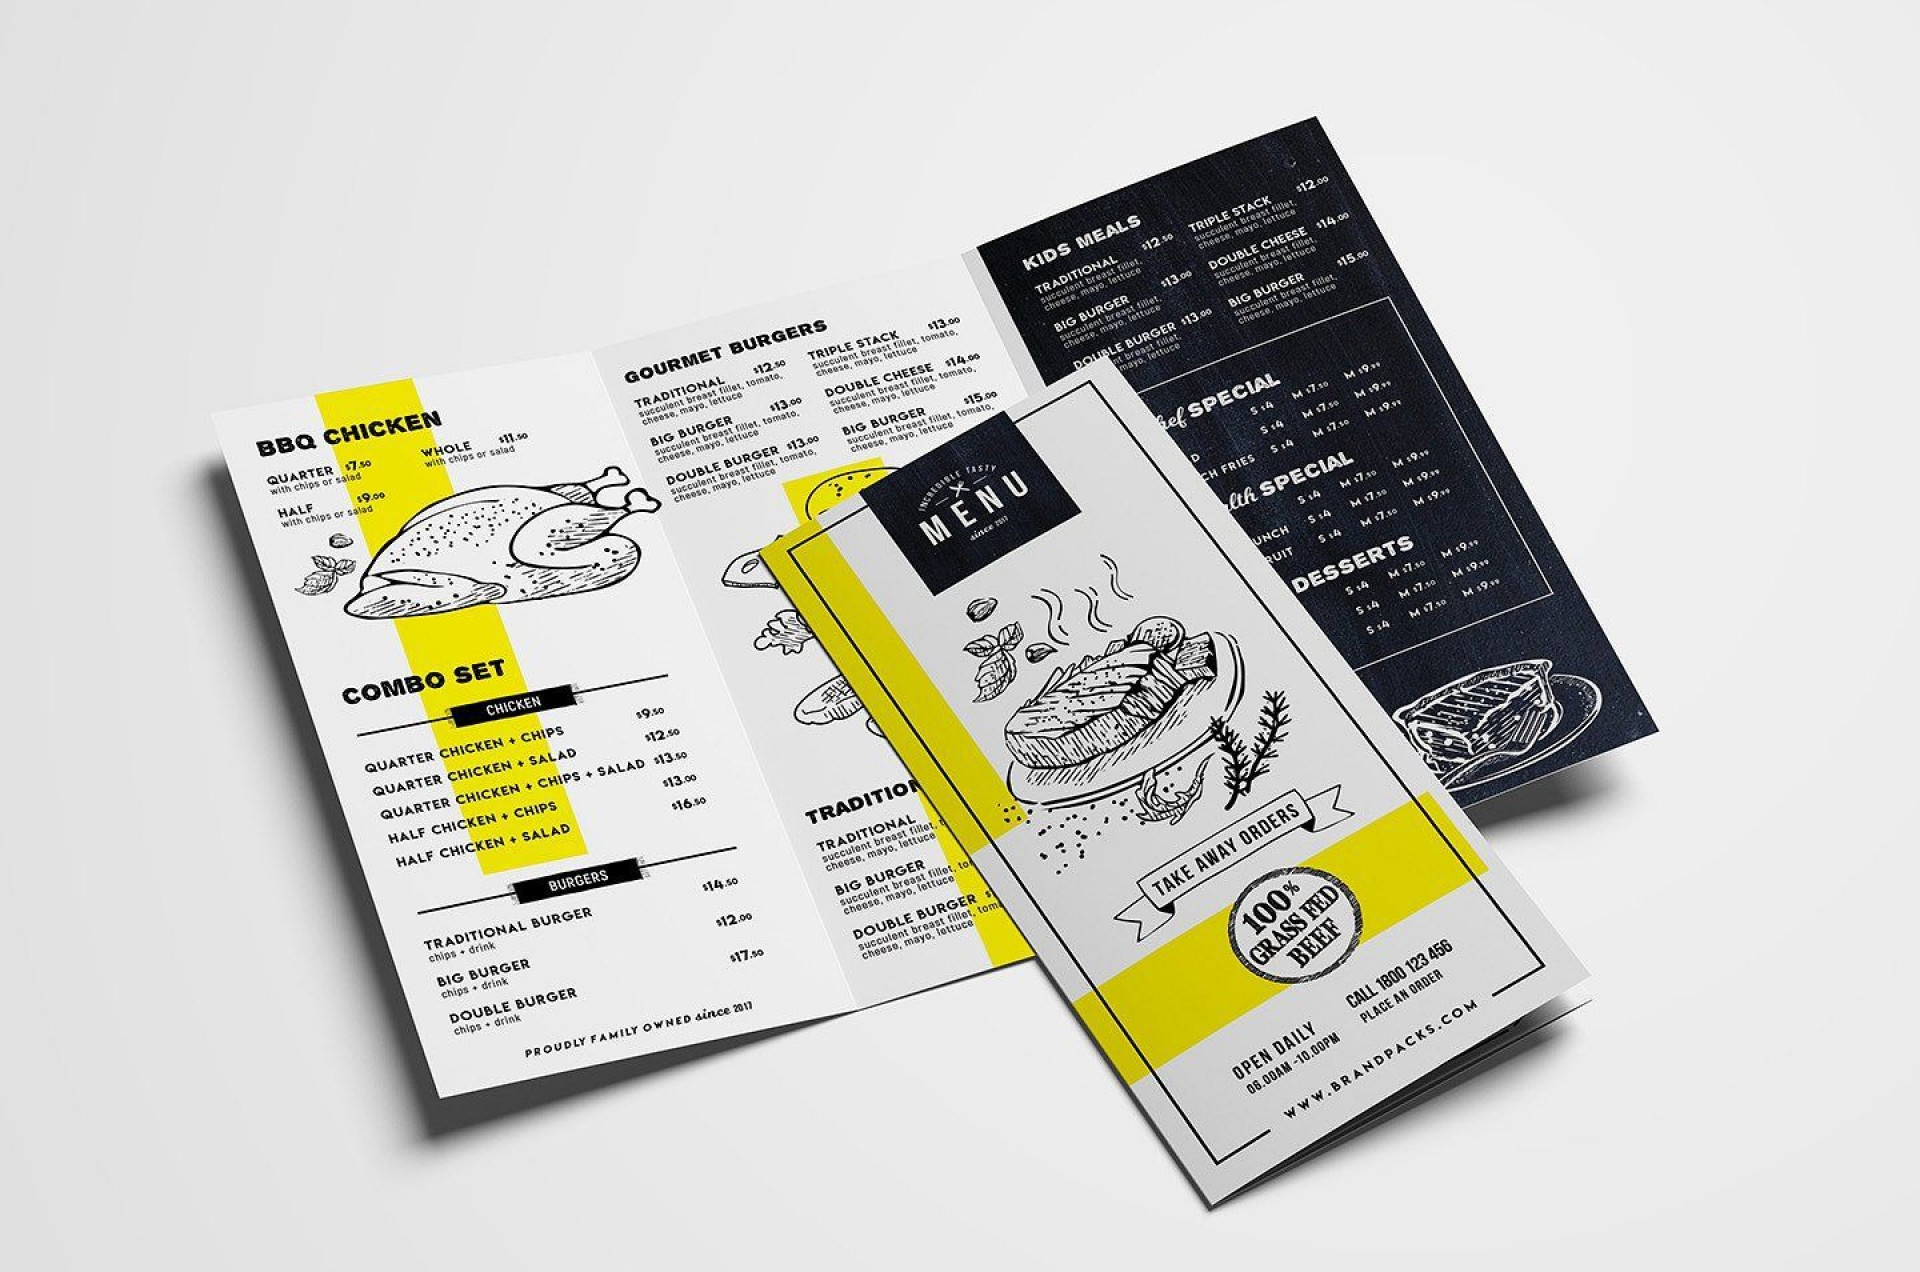 000 Fantastic Tri Fold Menu Template Free Highest Quality  Wedding Tri-fold Restaurant Food Psd Brochure Cafe Download1920